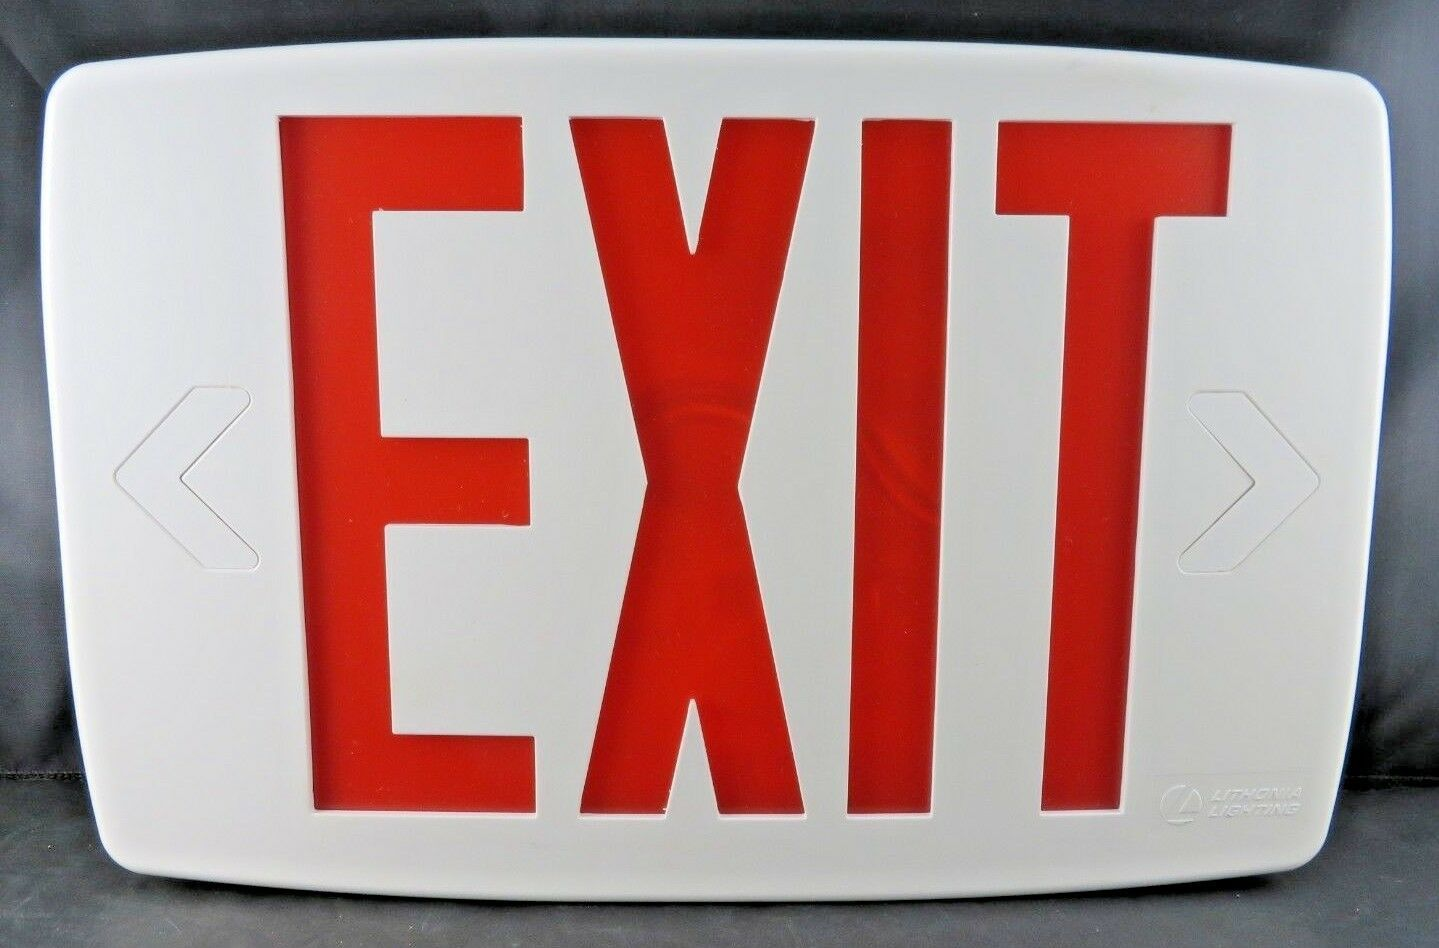 "Primary image for Lithonia Quantum Plastic White LED Emergency Exit Sign 11.75"" L"